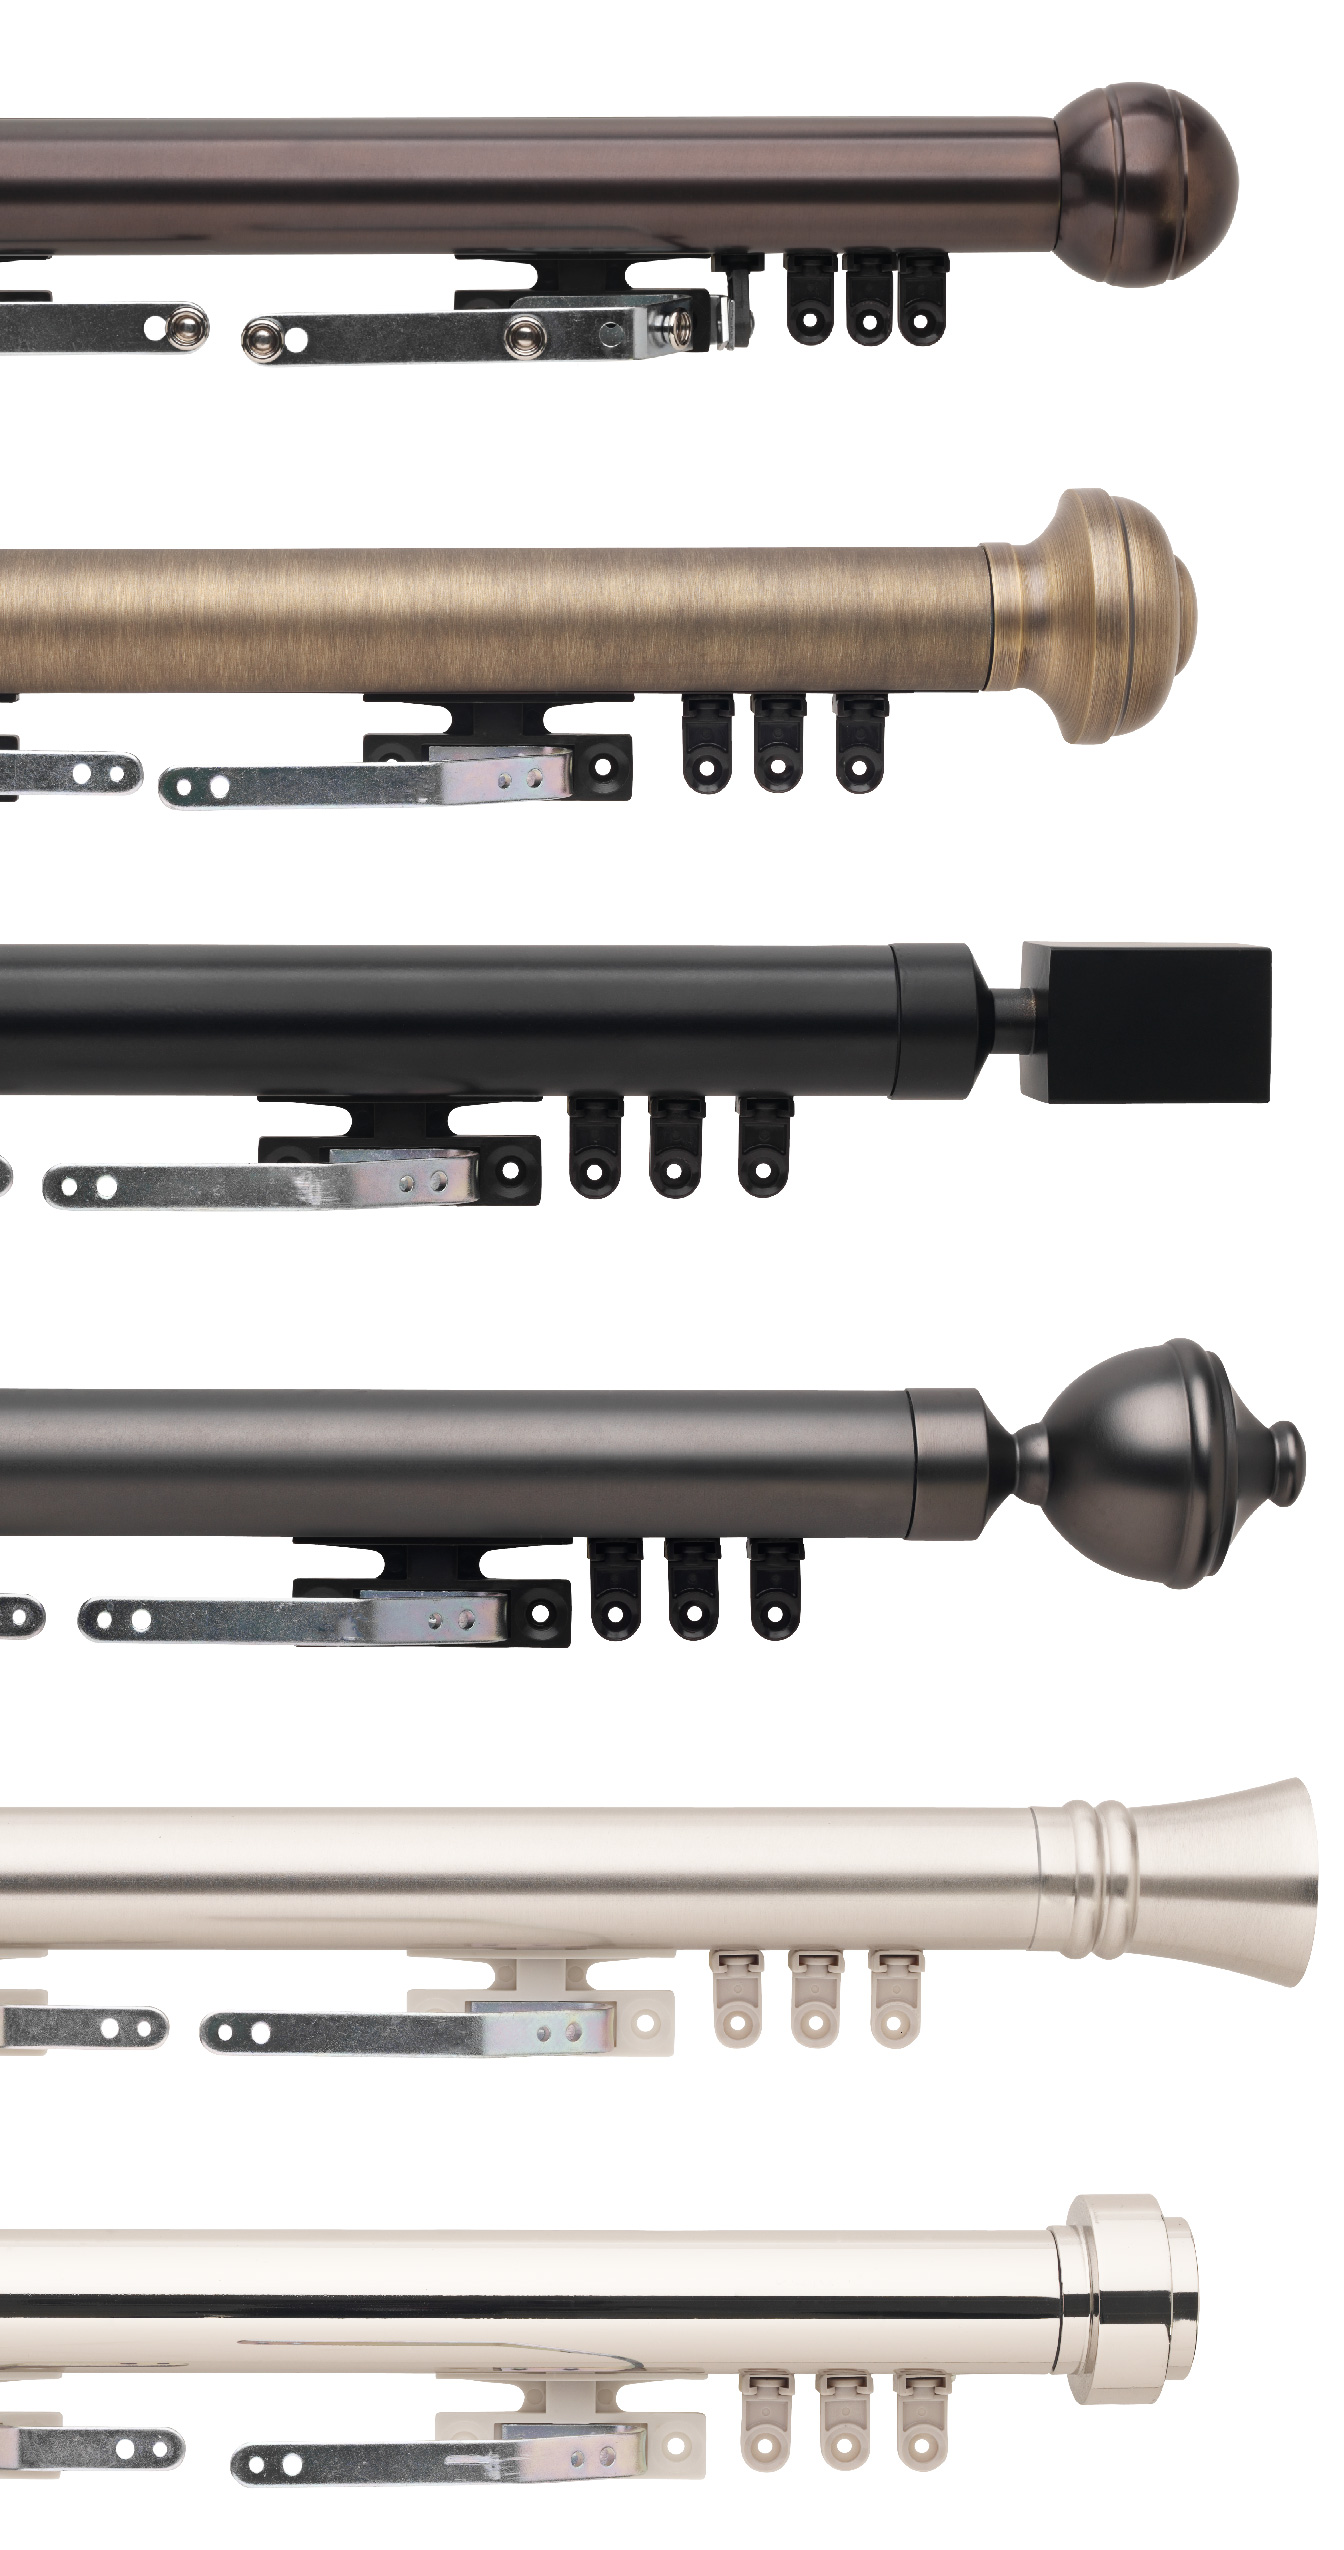 The six available finishes for the Select Metal Traverse Rod Sets. These finishes are Bronze, Brushed Brass, Matte Black, Graphite, Steel, Polished Nickel.